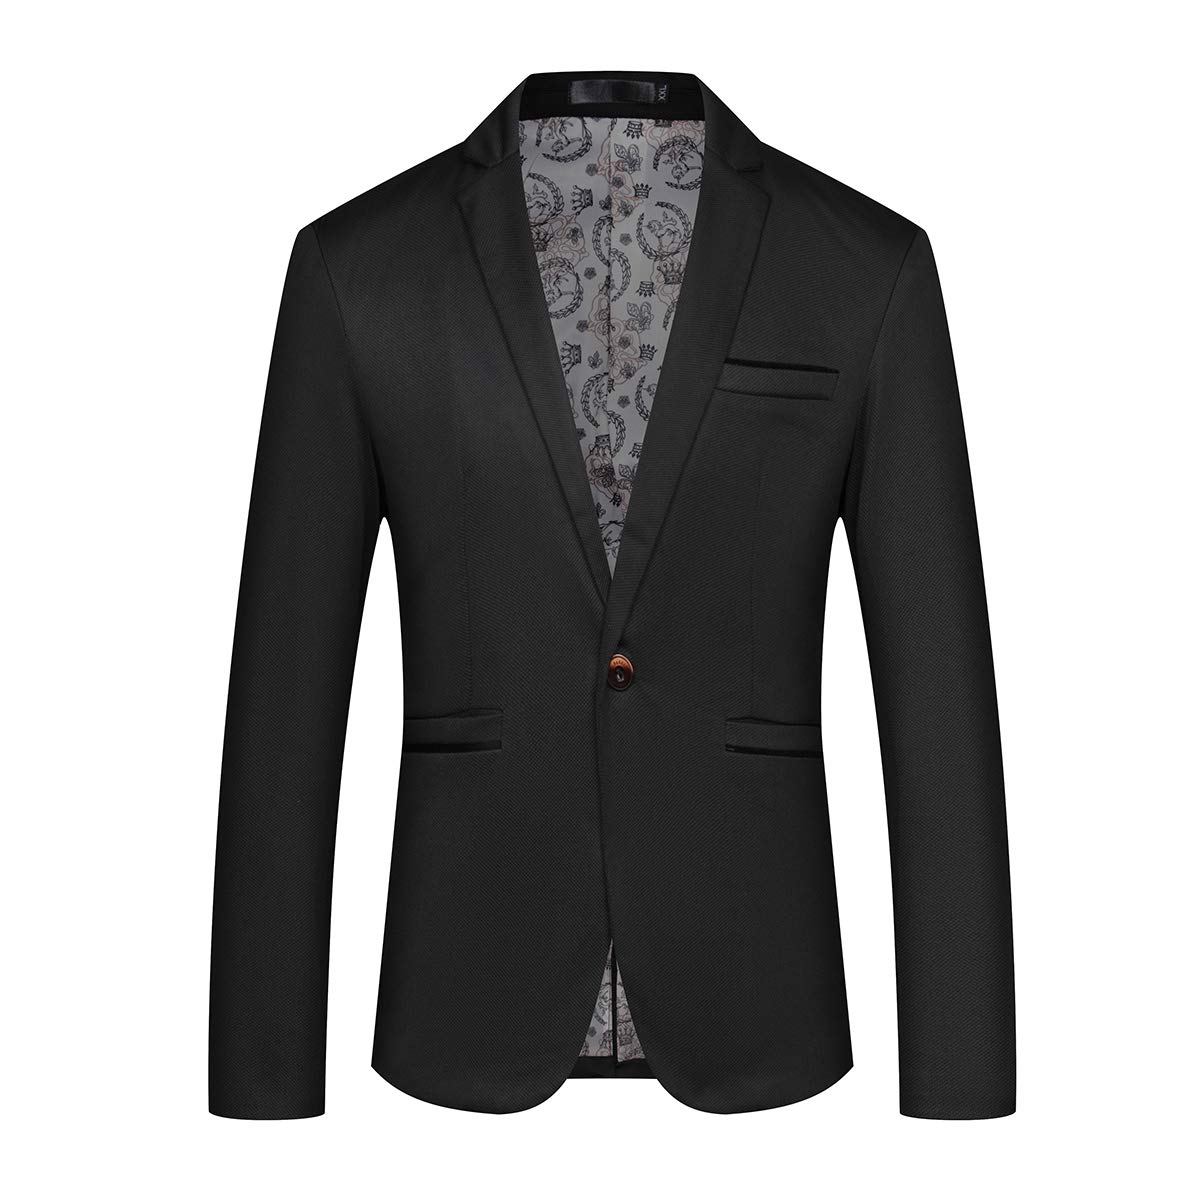 Mens Slim Fit Sport Coat Casual One Button Solid Color Jacket Blazer Black by YFFUSHI